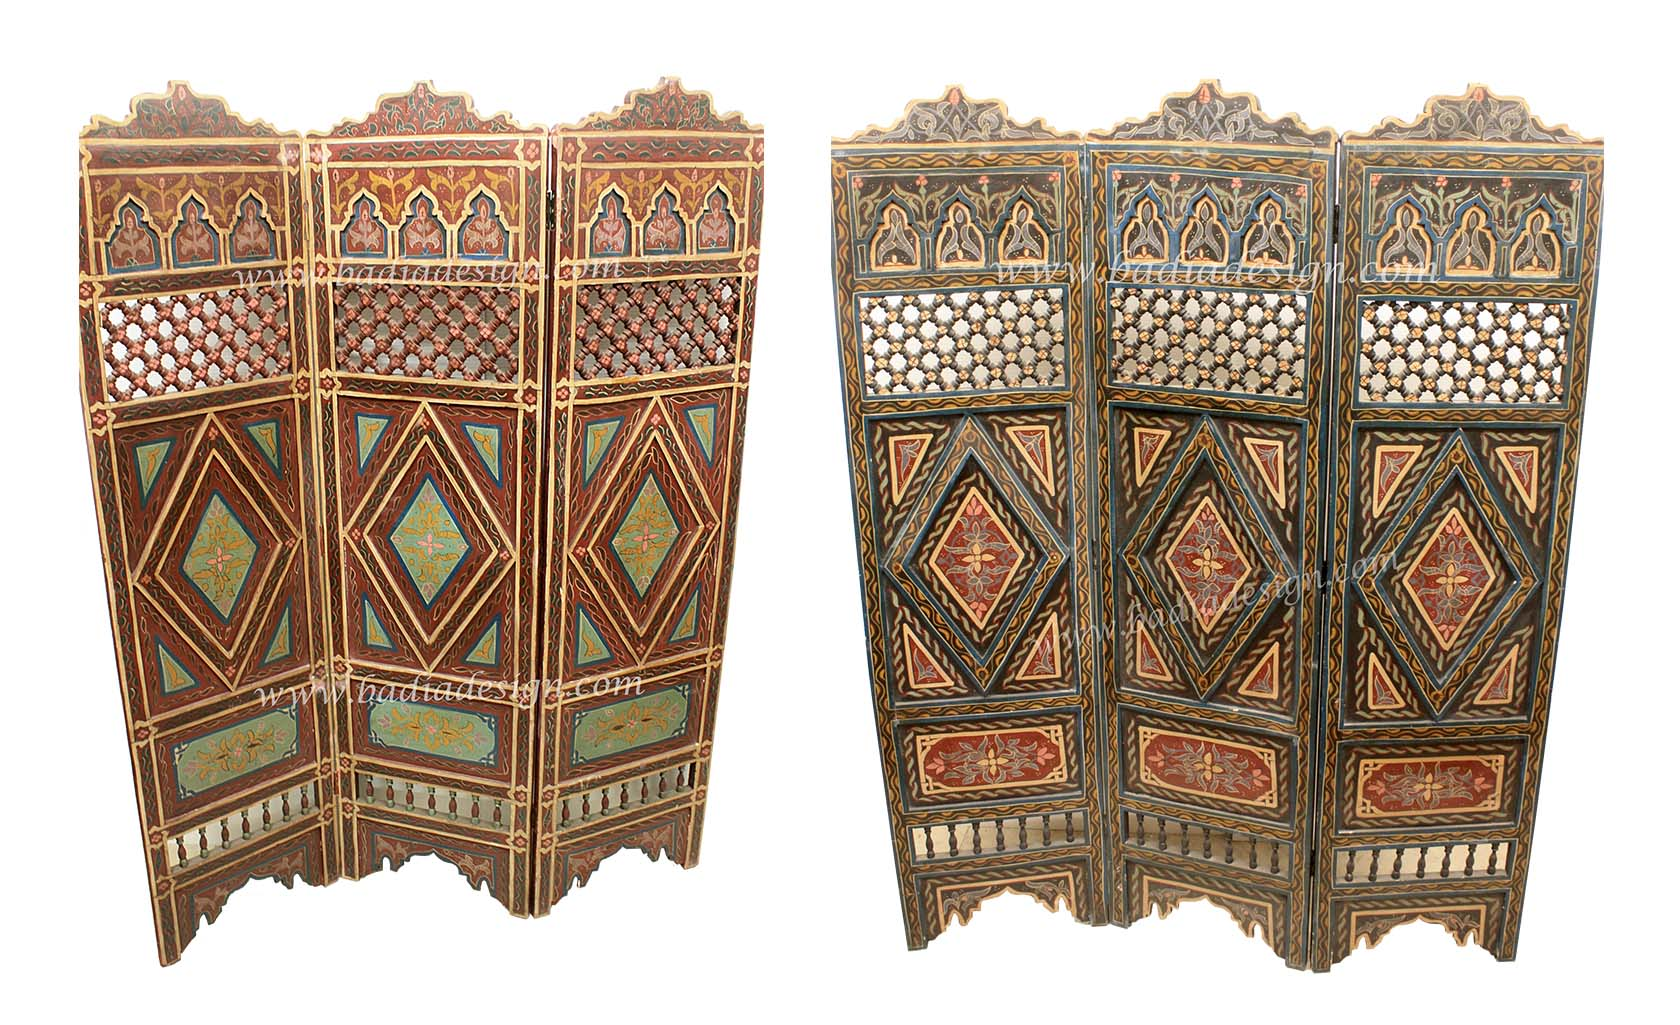 Moroccan Hand Painted Wooden Divider